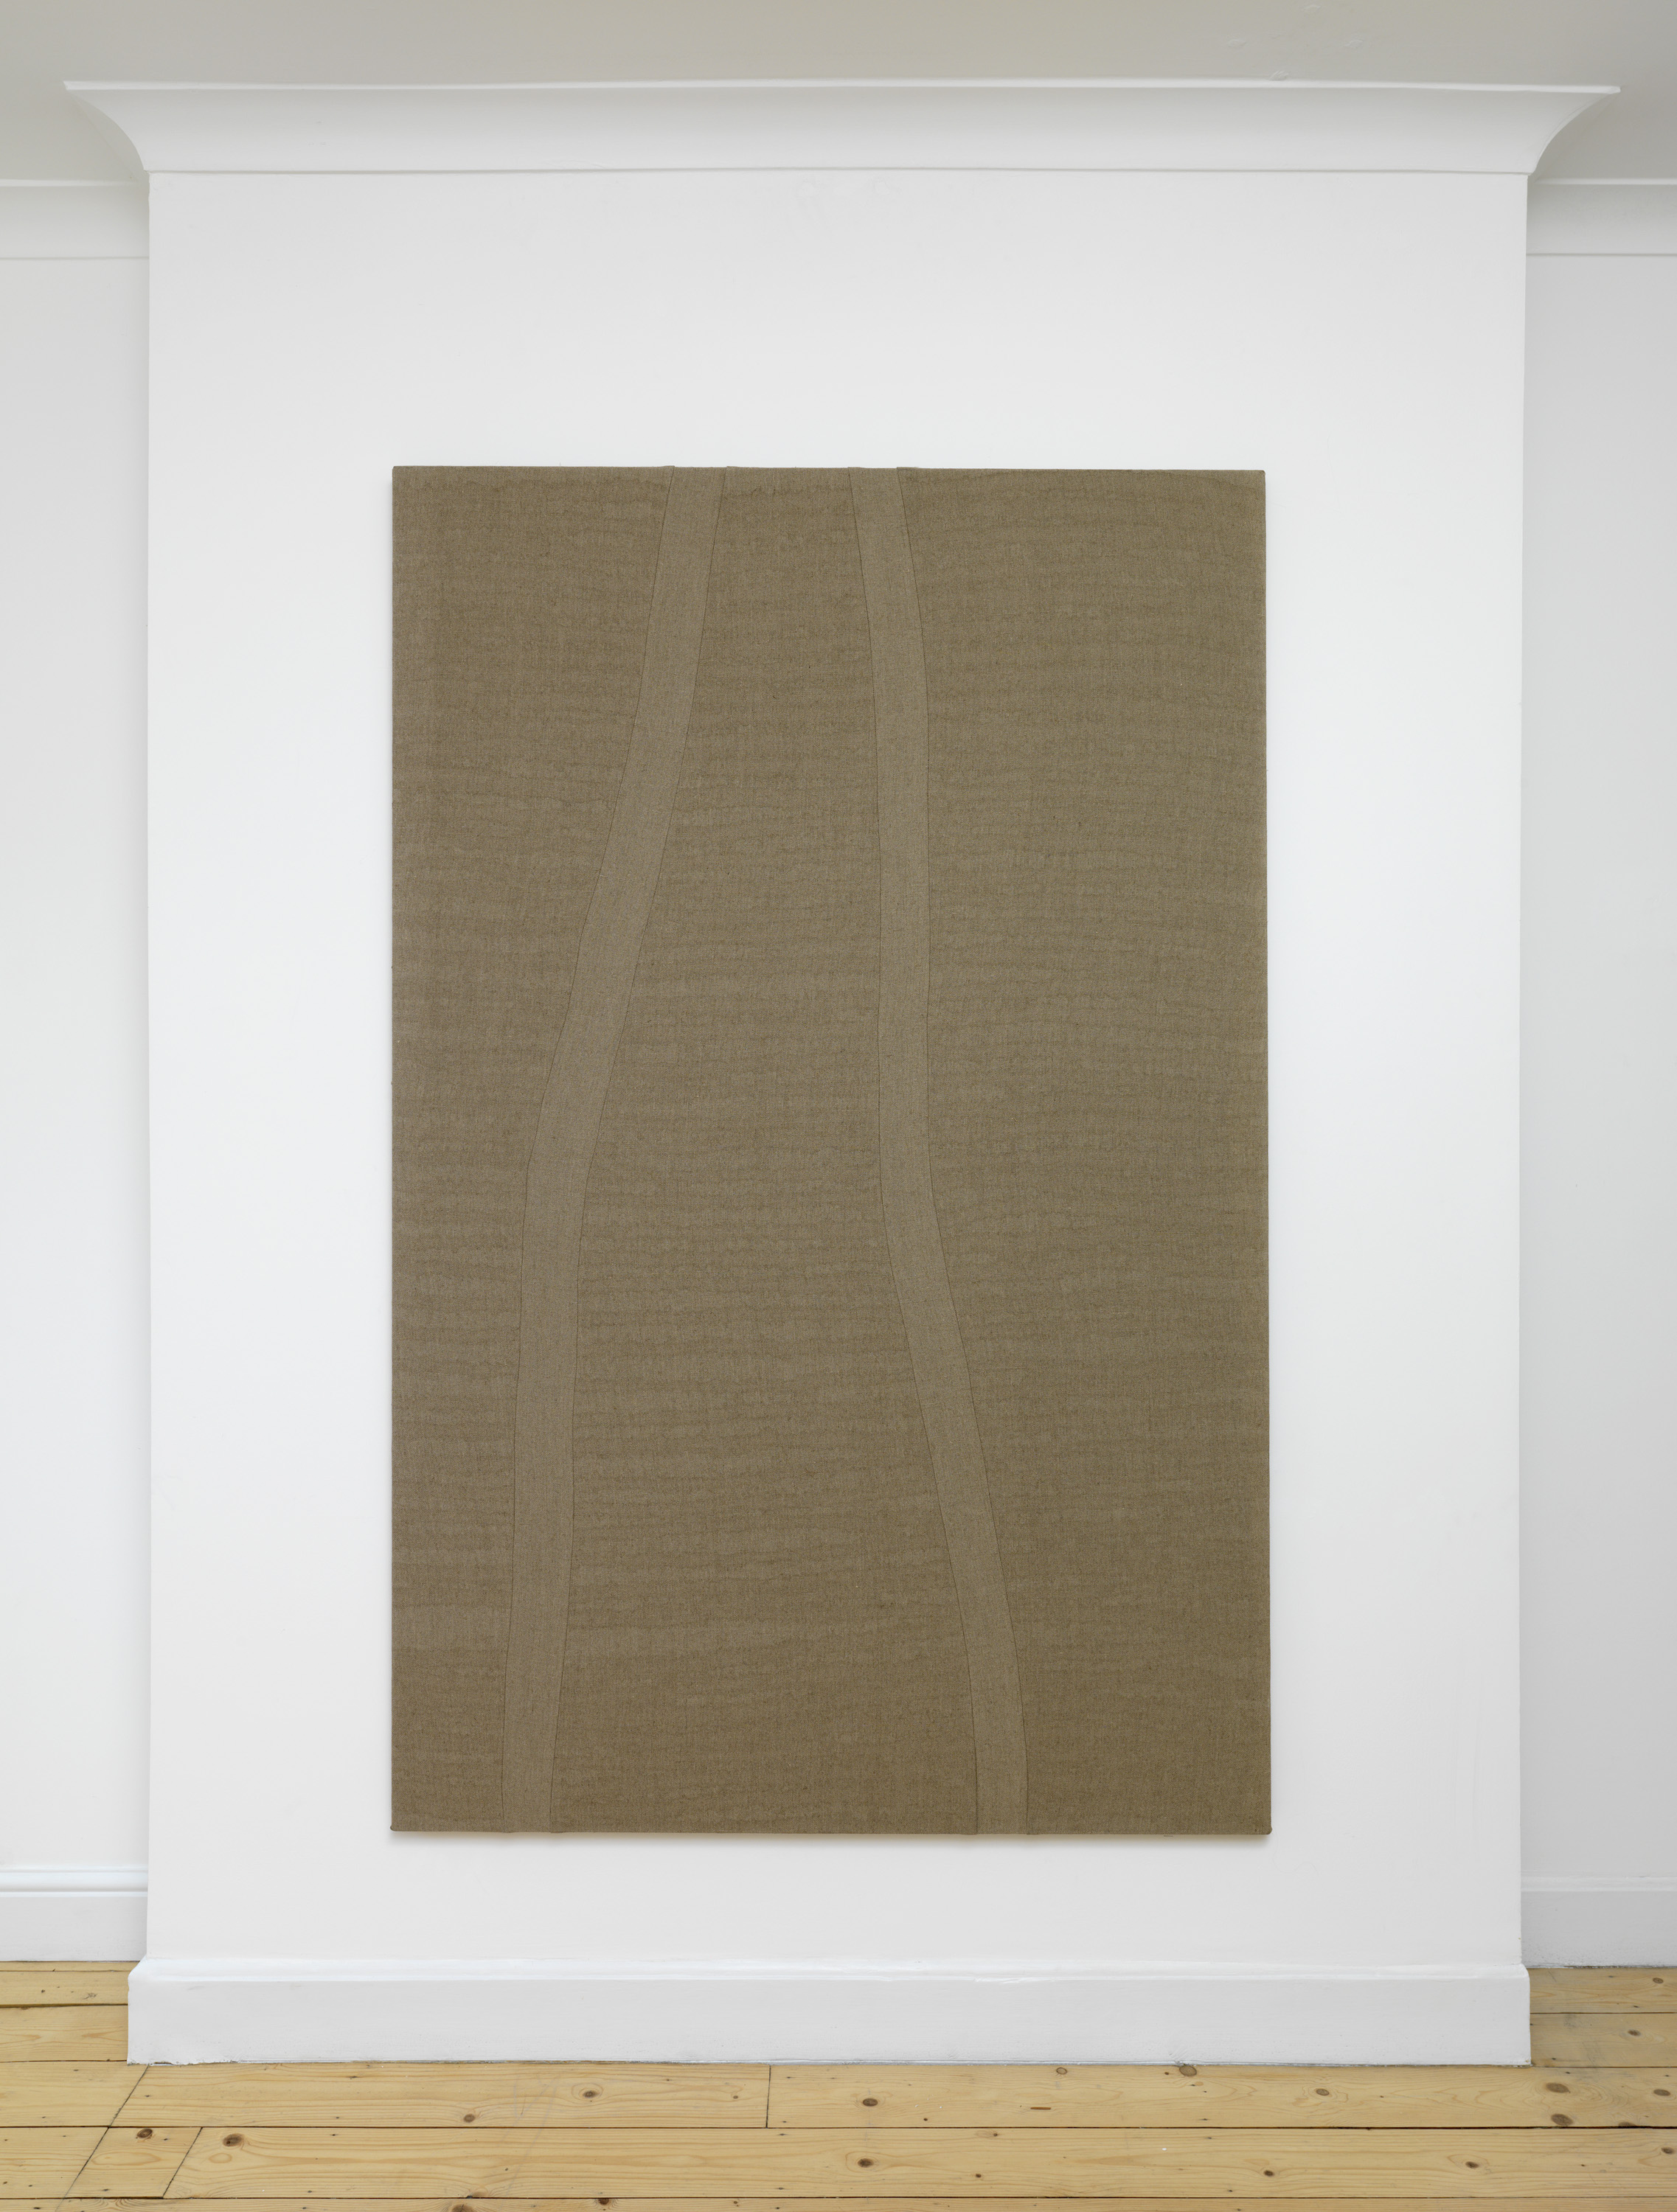 Patrick-heide-dillwyn-smith-dirty-linen-installationshot05